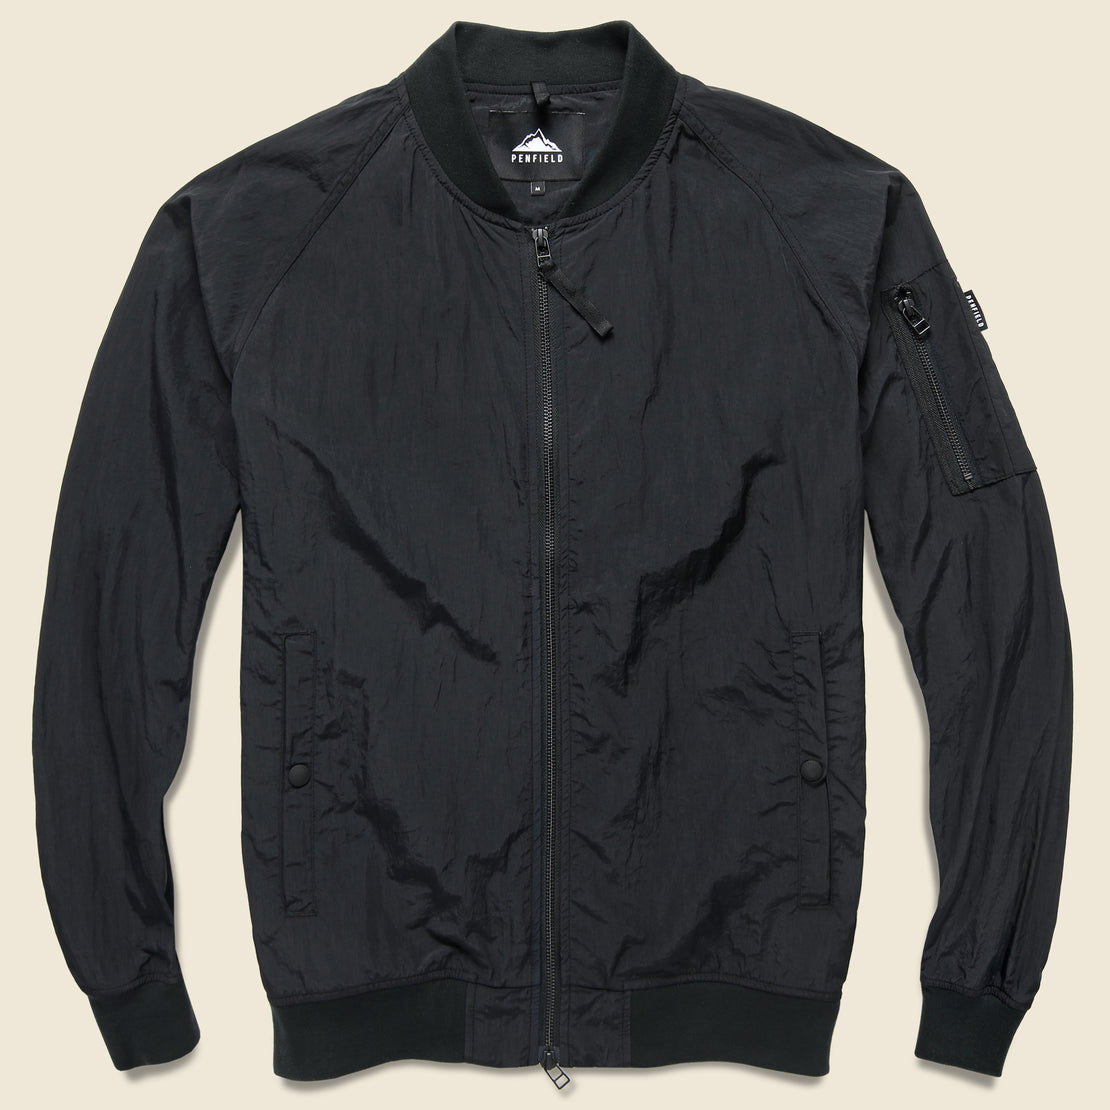 Penfield Okenfield Jacket - Black